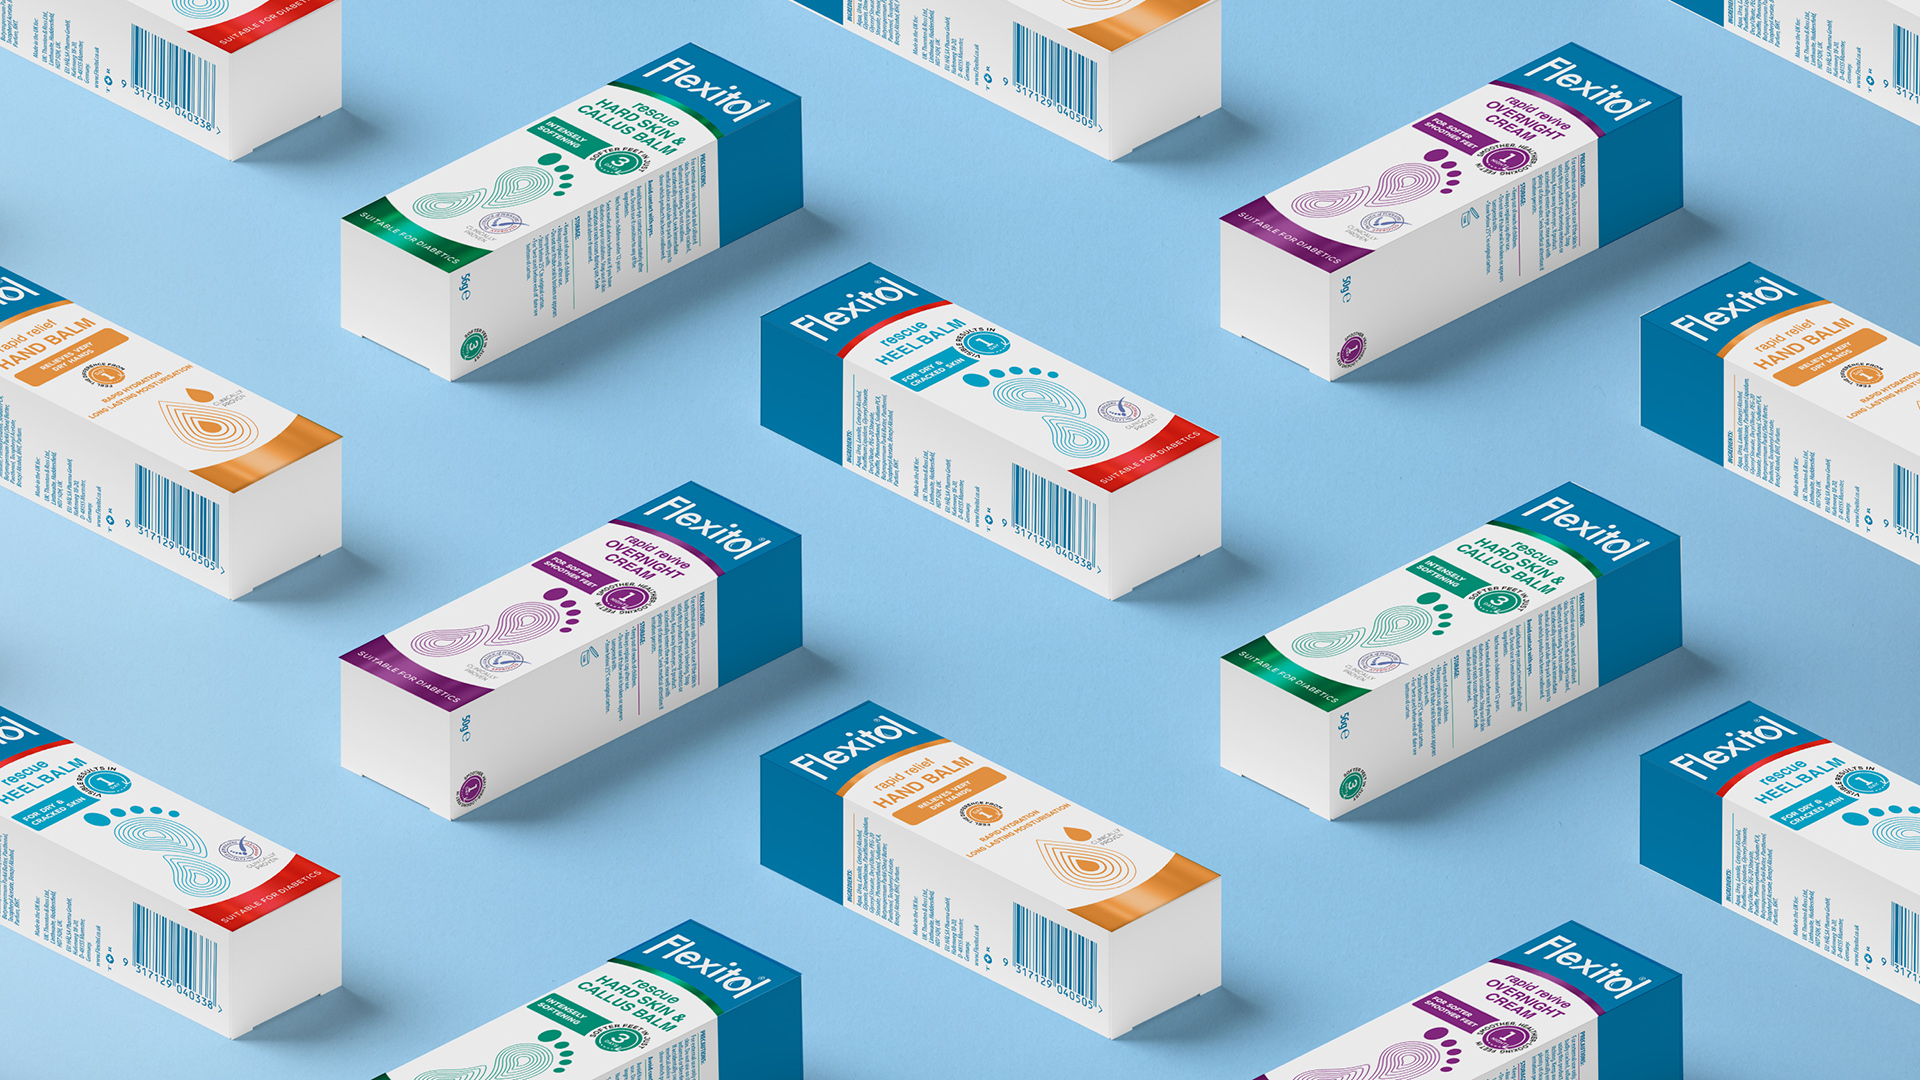 Flexitol Puts Its Best Foot Forward With New Packaging Design by Brandon